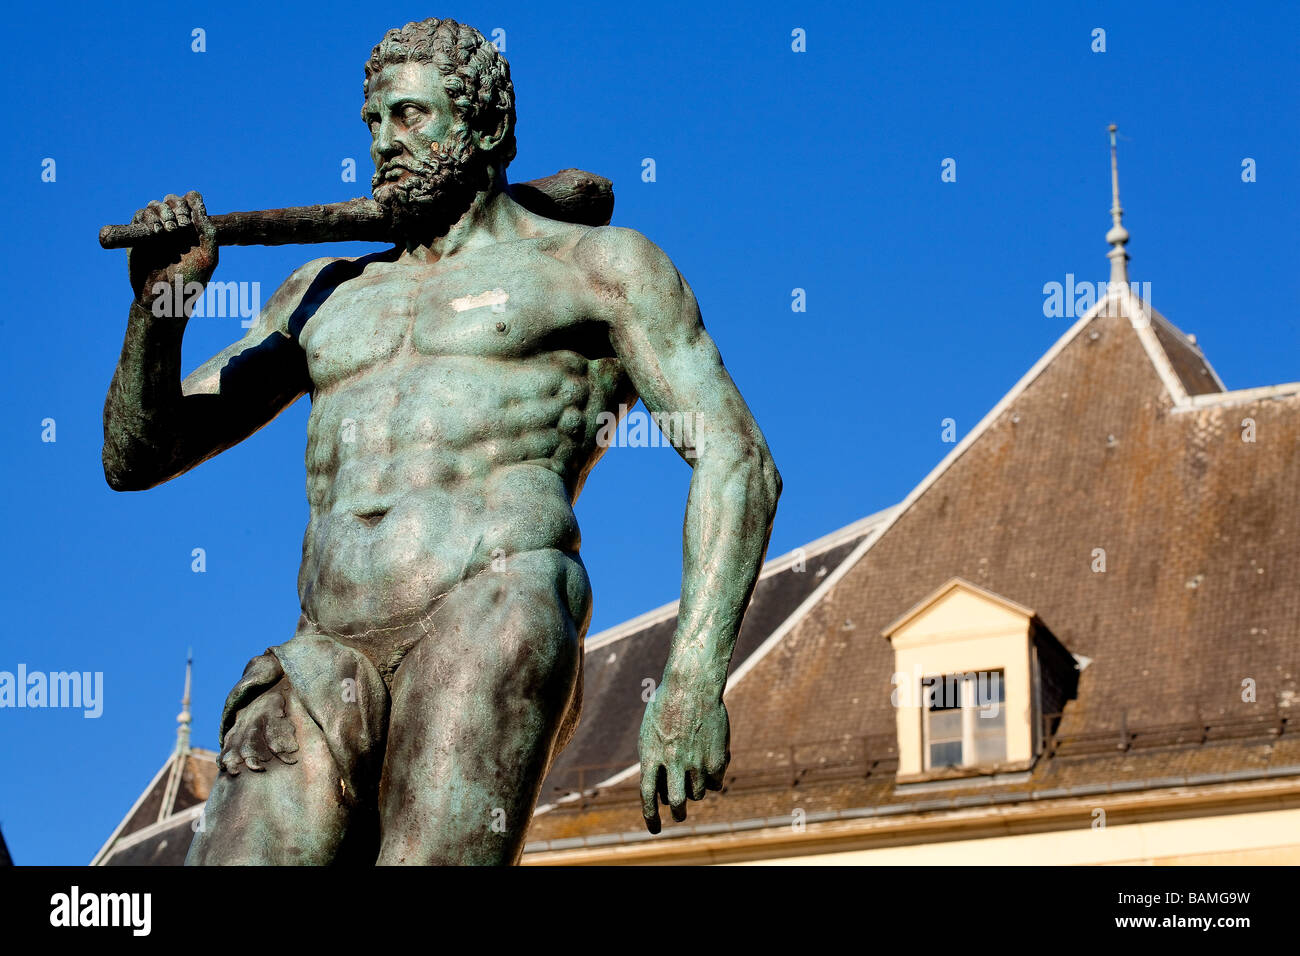 France, Isere, Grenoble, Jardin de Ville, Hercule Statue in front of the Lesdiguières Mansion House built beetwen - Stock Image